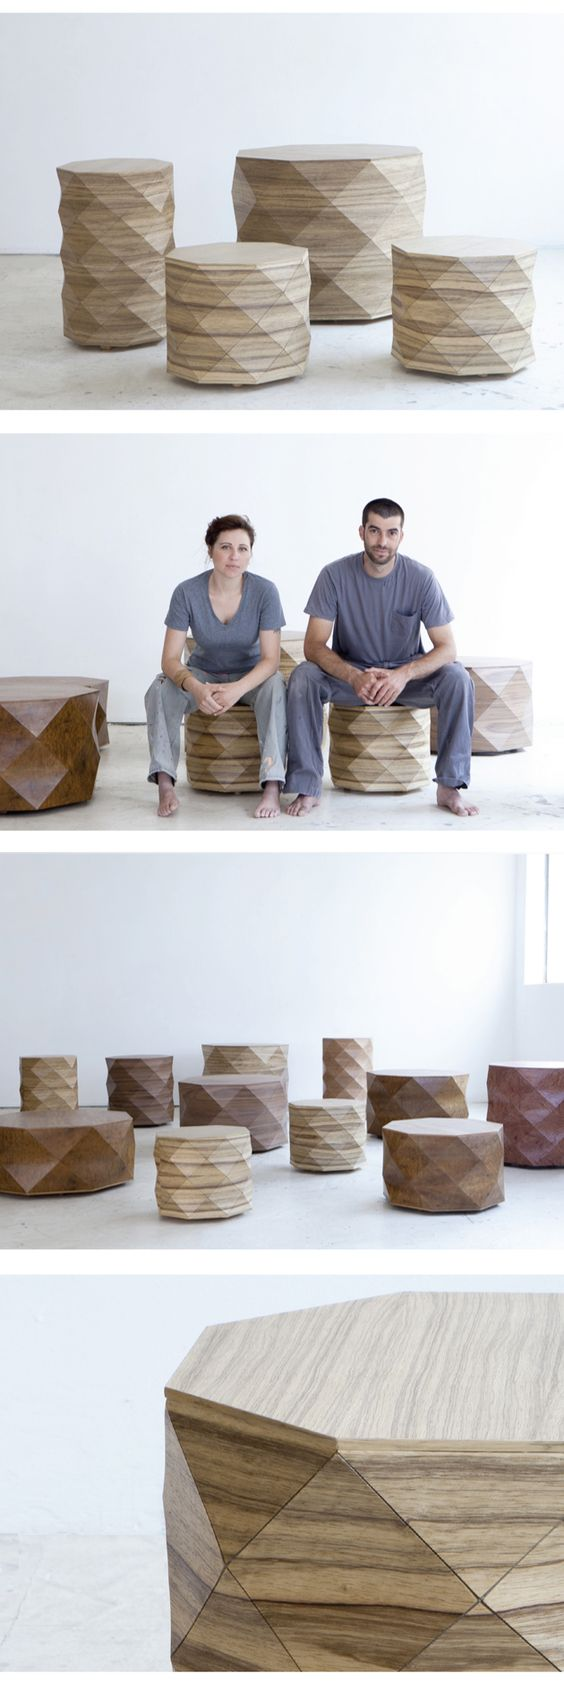 Diamond Wood Side Tables & Coffee Tables #design #pin_it @mundodascasas Veja mais aqui(See more here) www.mundodascasas.com.br